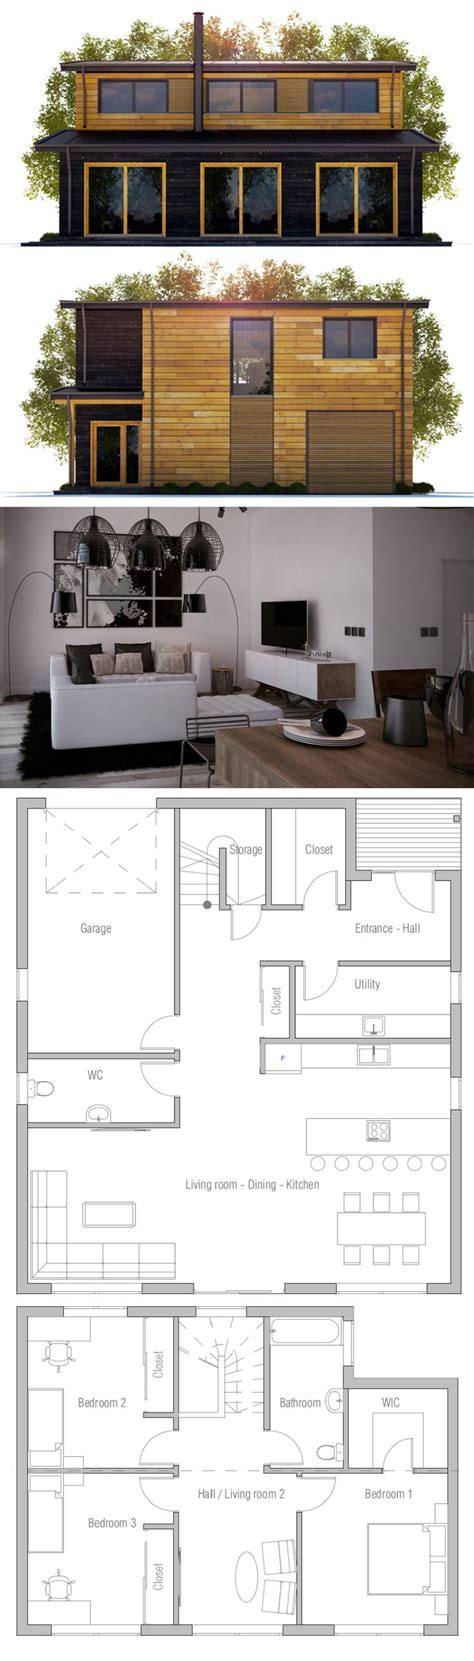 affordable housing plans and design affordable house plans housing plan top best ideas on